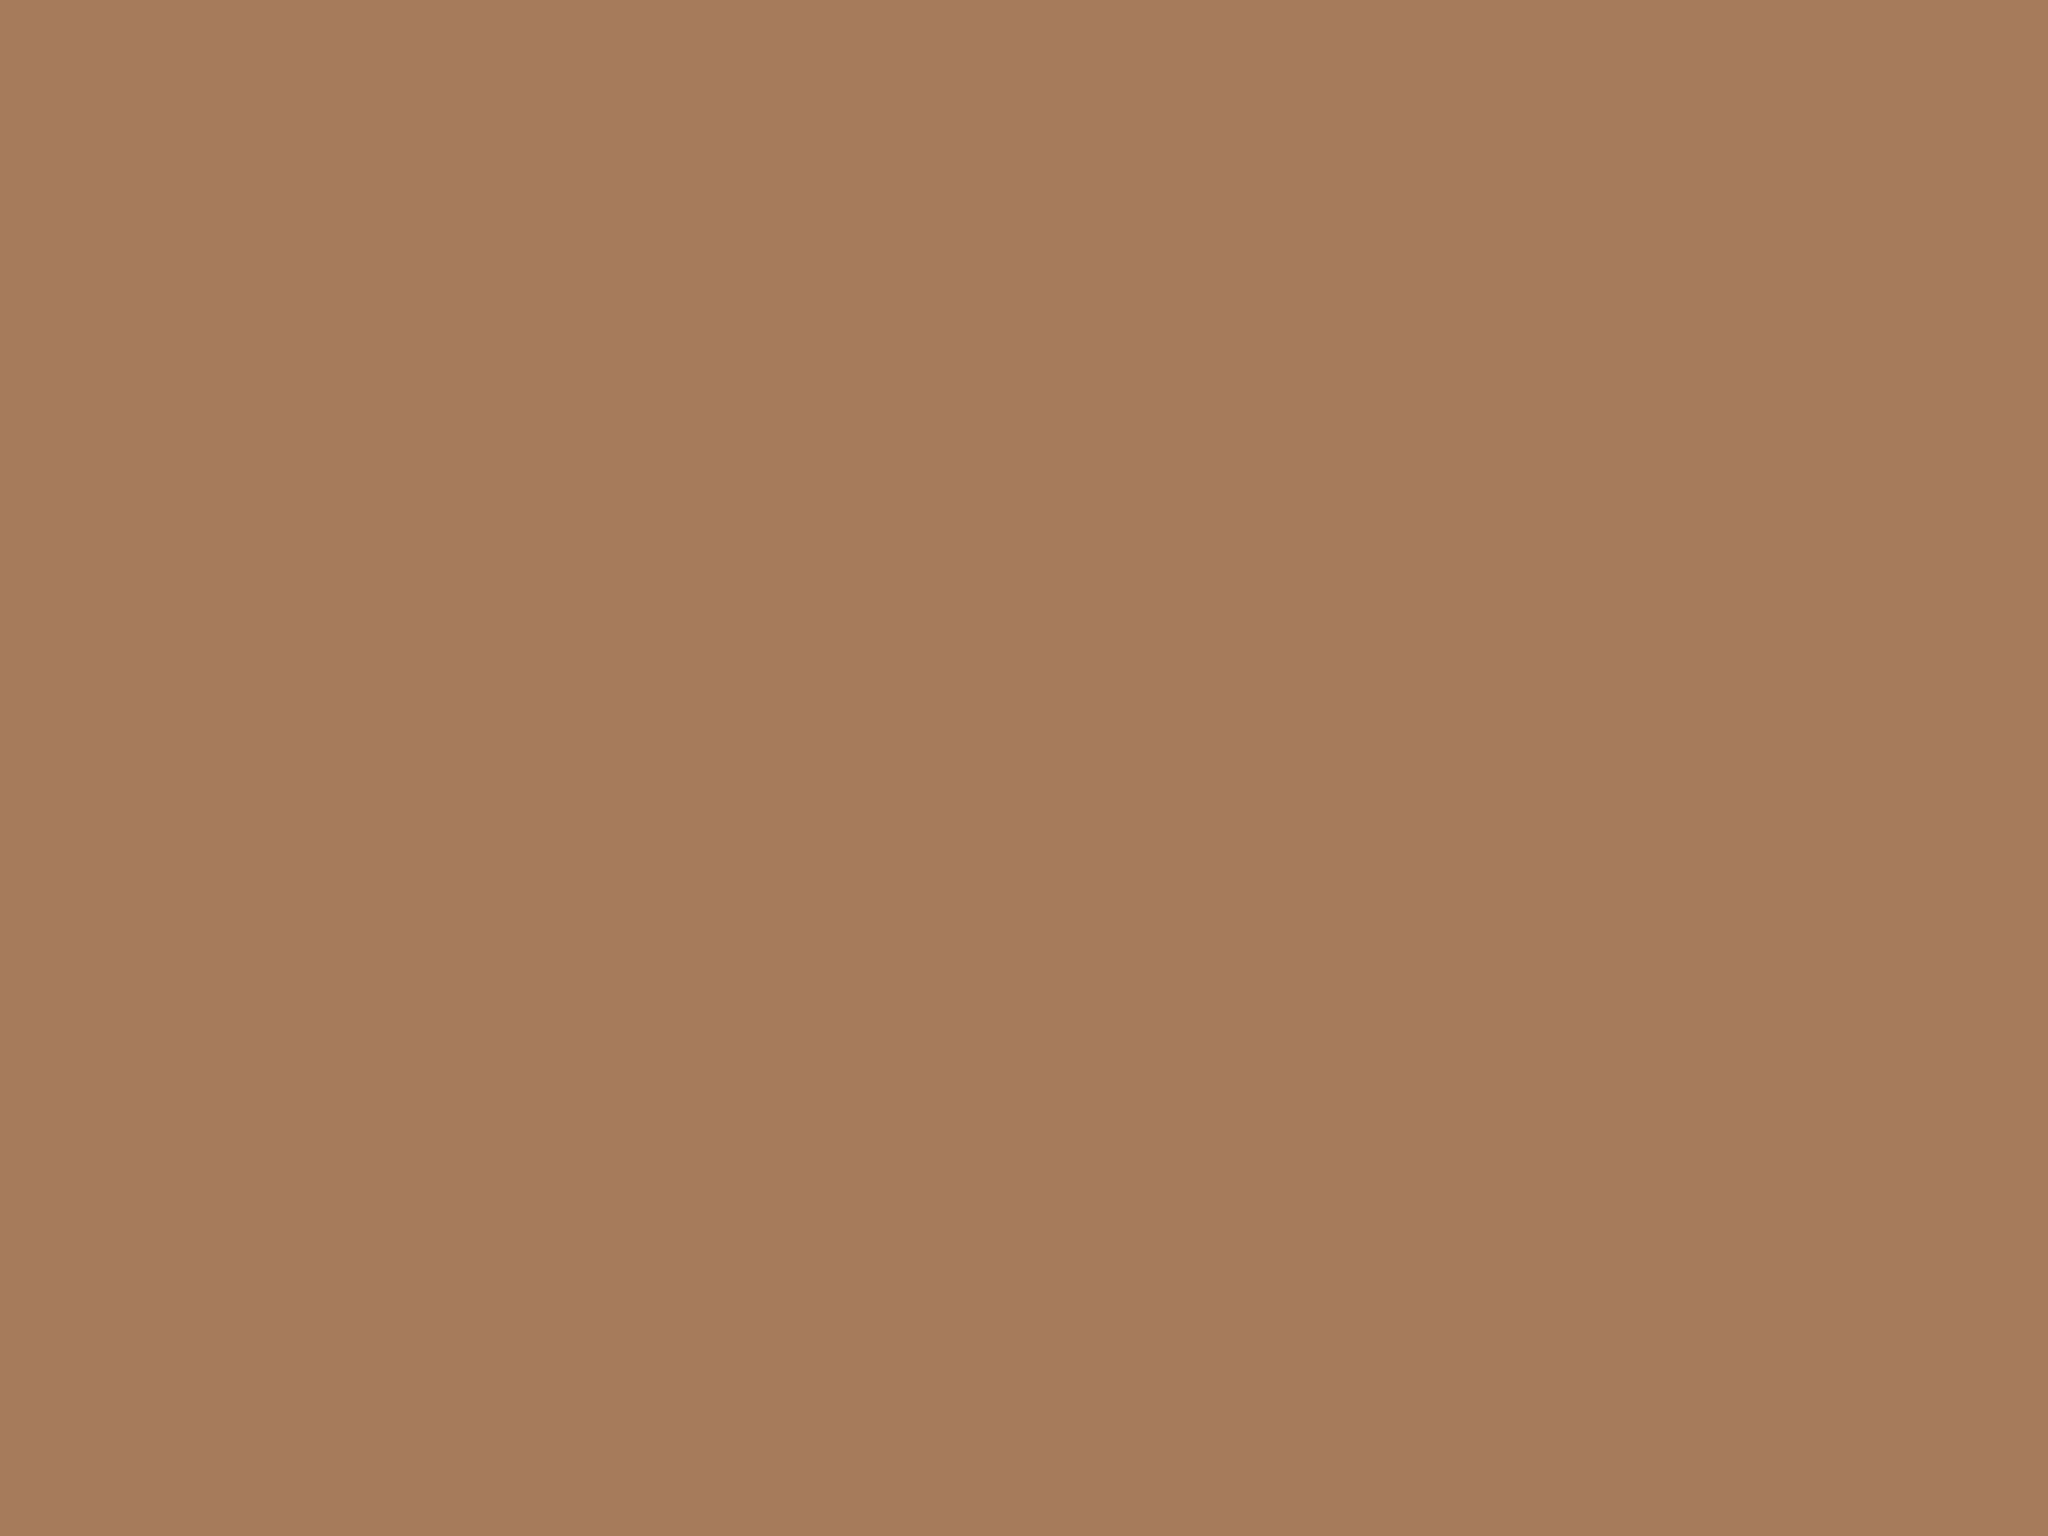 2048x1536 Tuscan Tan Solid Color Background